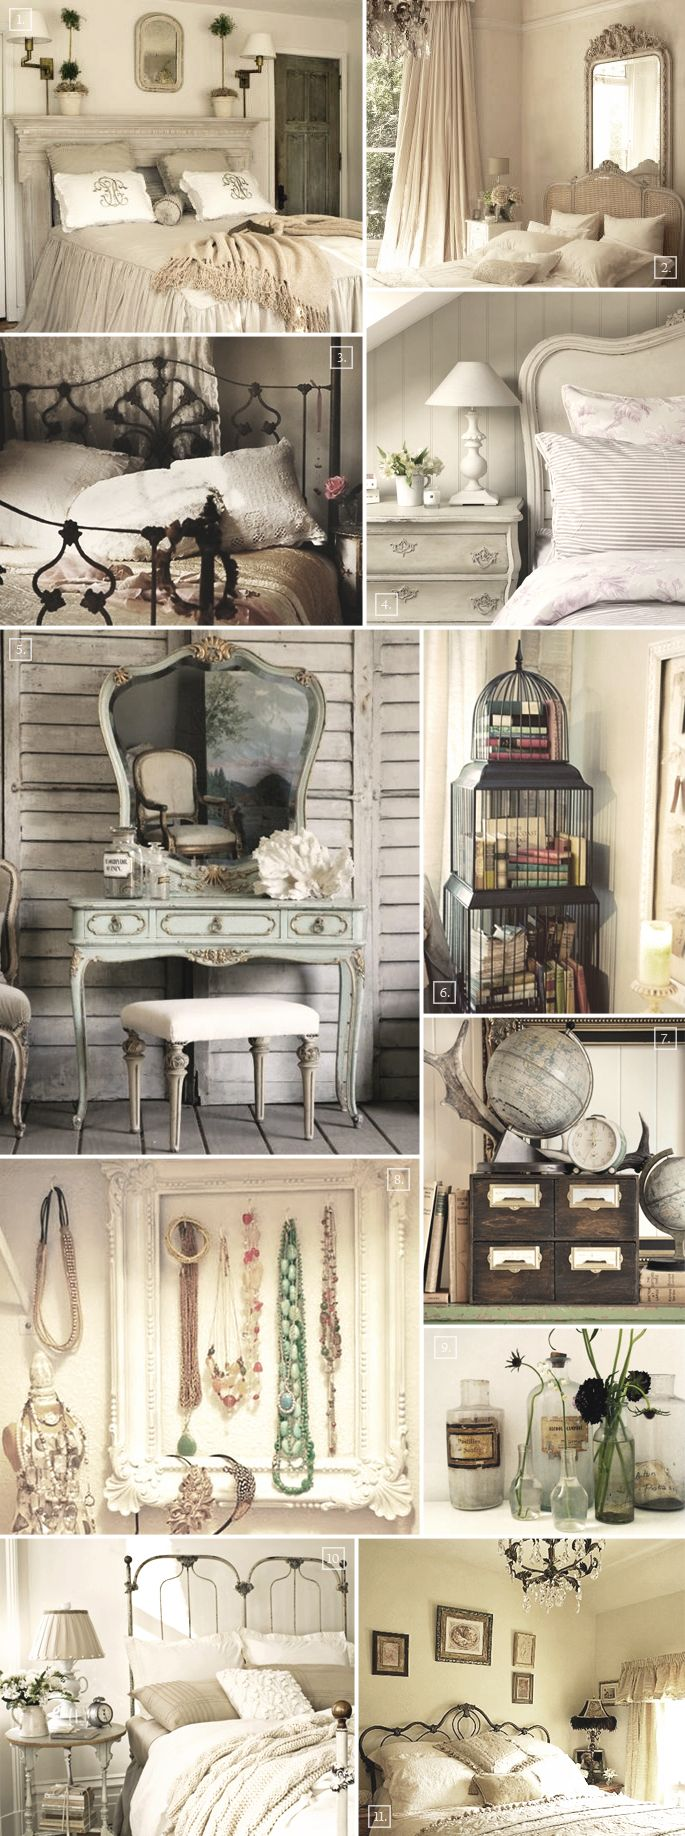 Unique Bedroom Accessories Country Bedroom Decorating Ideas Pinterest 14 9 Kaartenstemp Nl